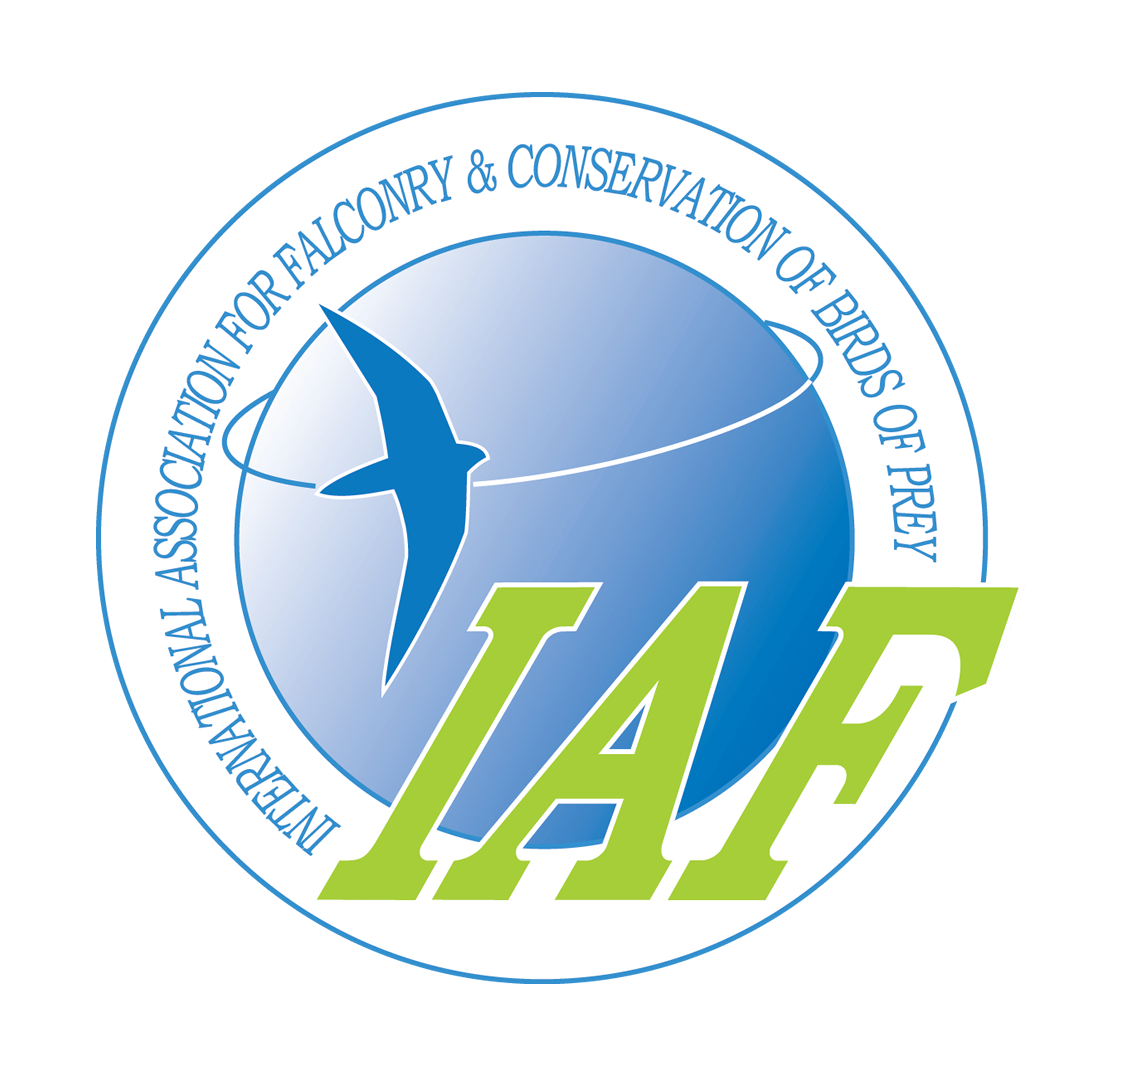 The IAF is an international federation of falconry organisations